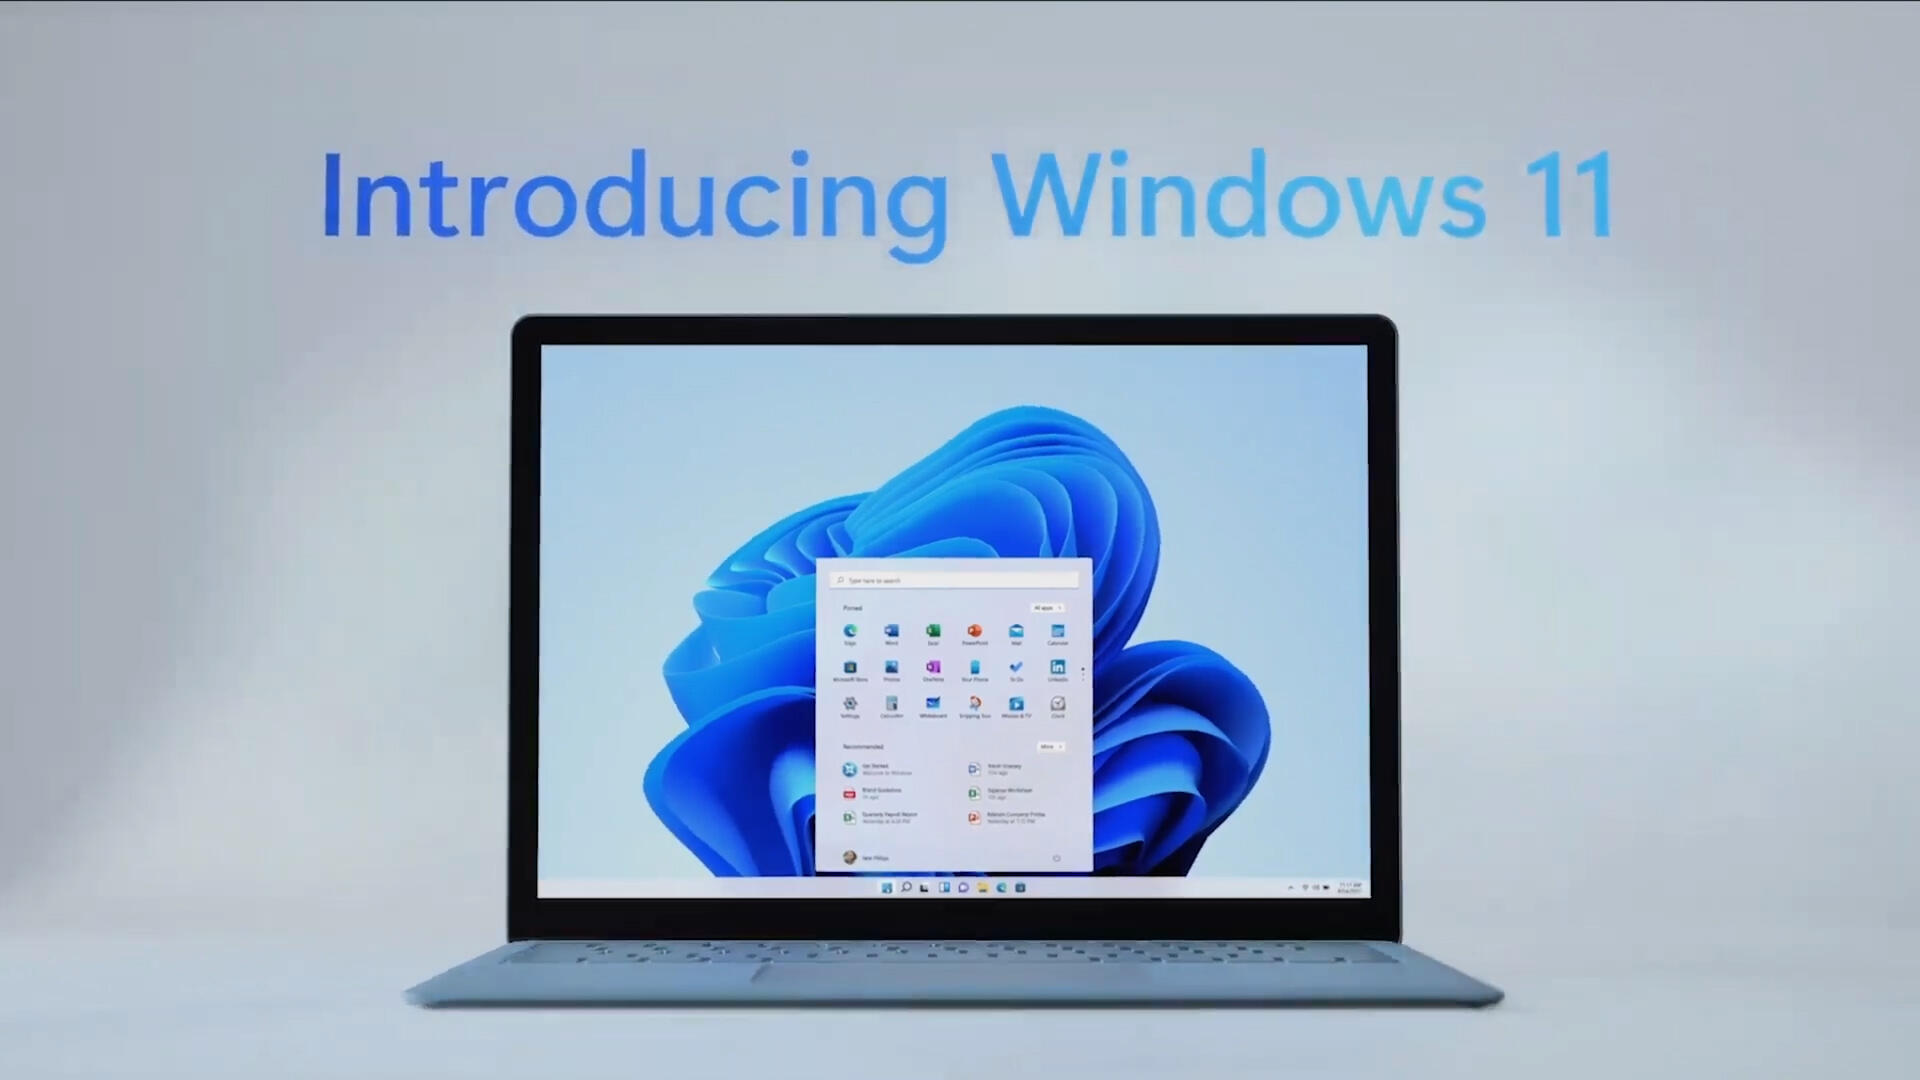 Video: Windows 11 gets official, Google puts brakes on Chrome change